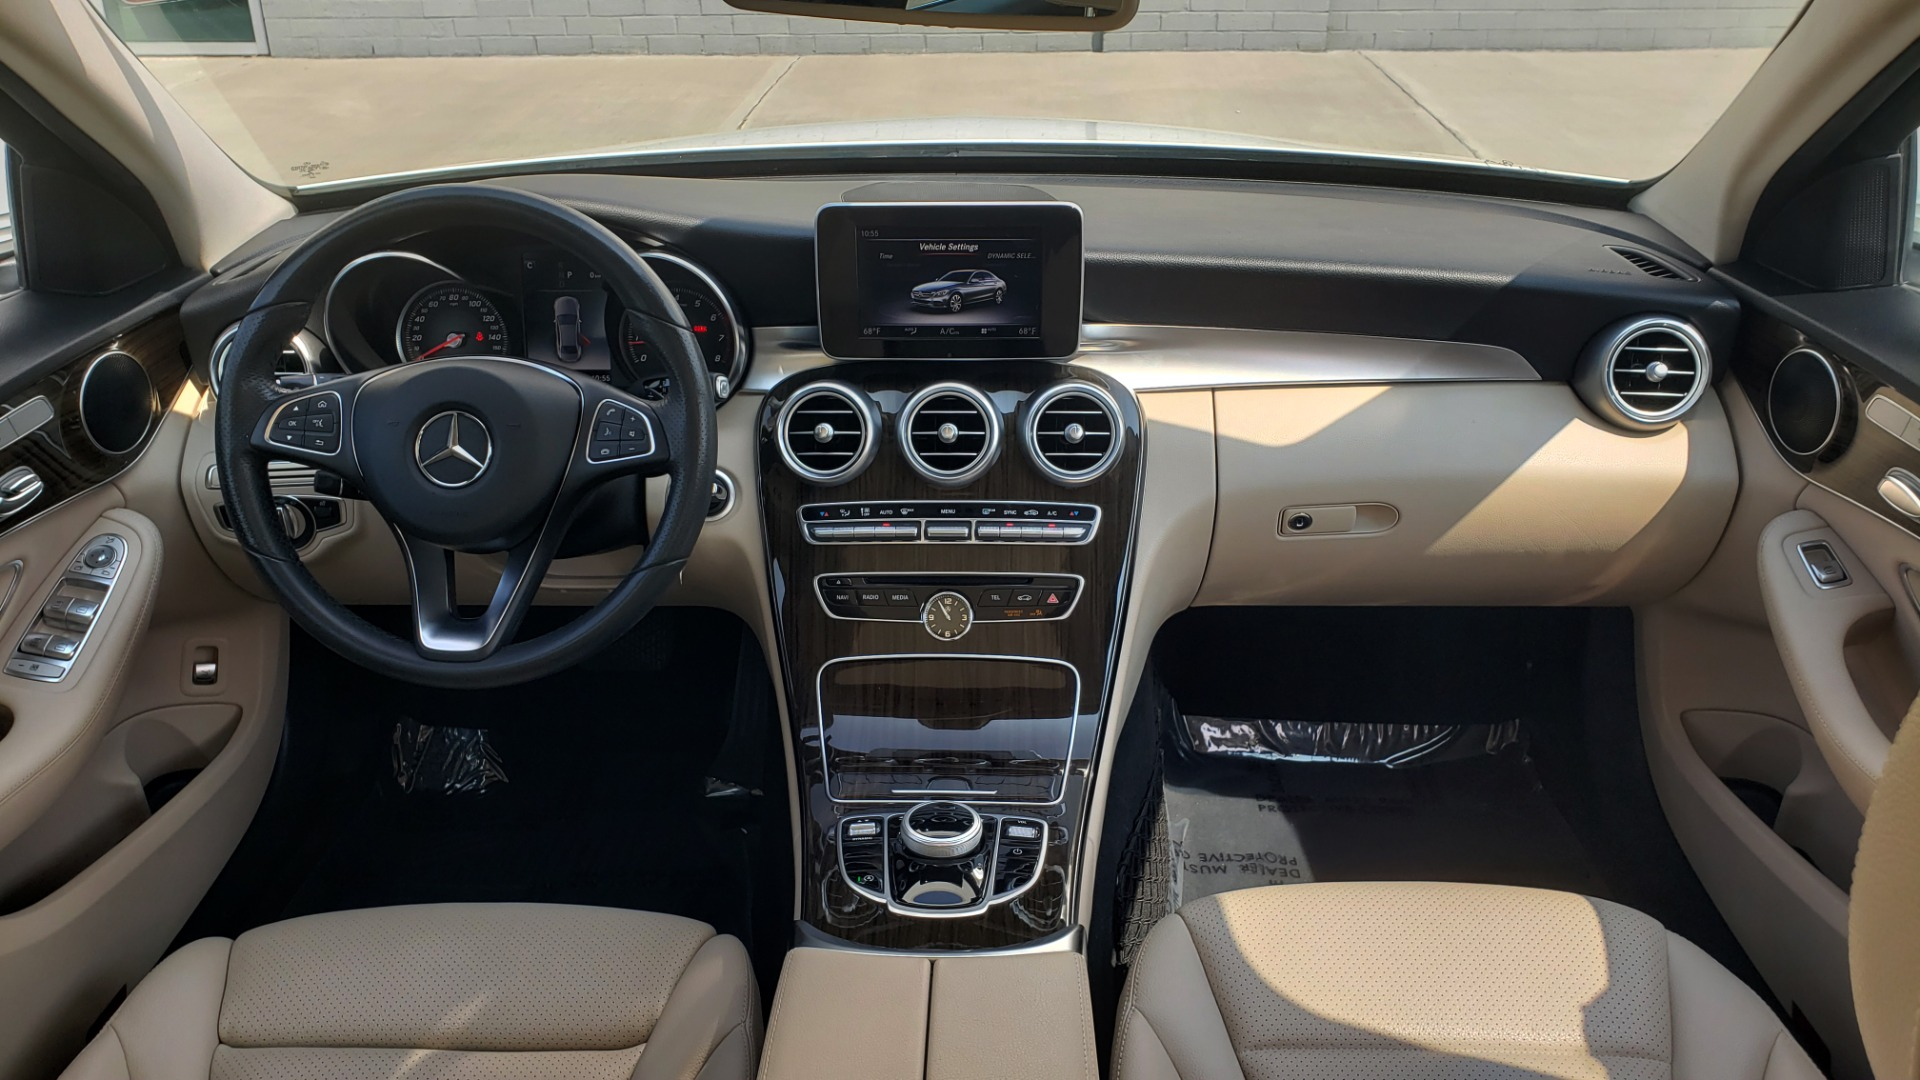 Used 2018 Mercedes-Benz C-CLASS C 300 PREMIUM / KEYLESS-GO / APPLE / PANO-ROOF / REARVIEW for sale $28,295 at Formula Imports in Charlotte NC 28227 70